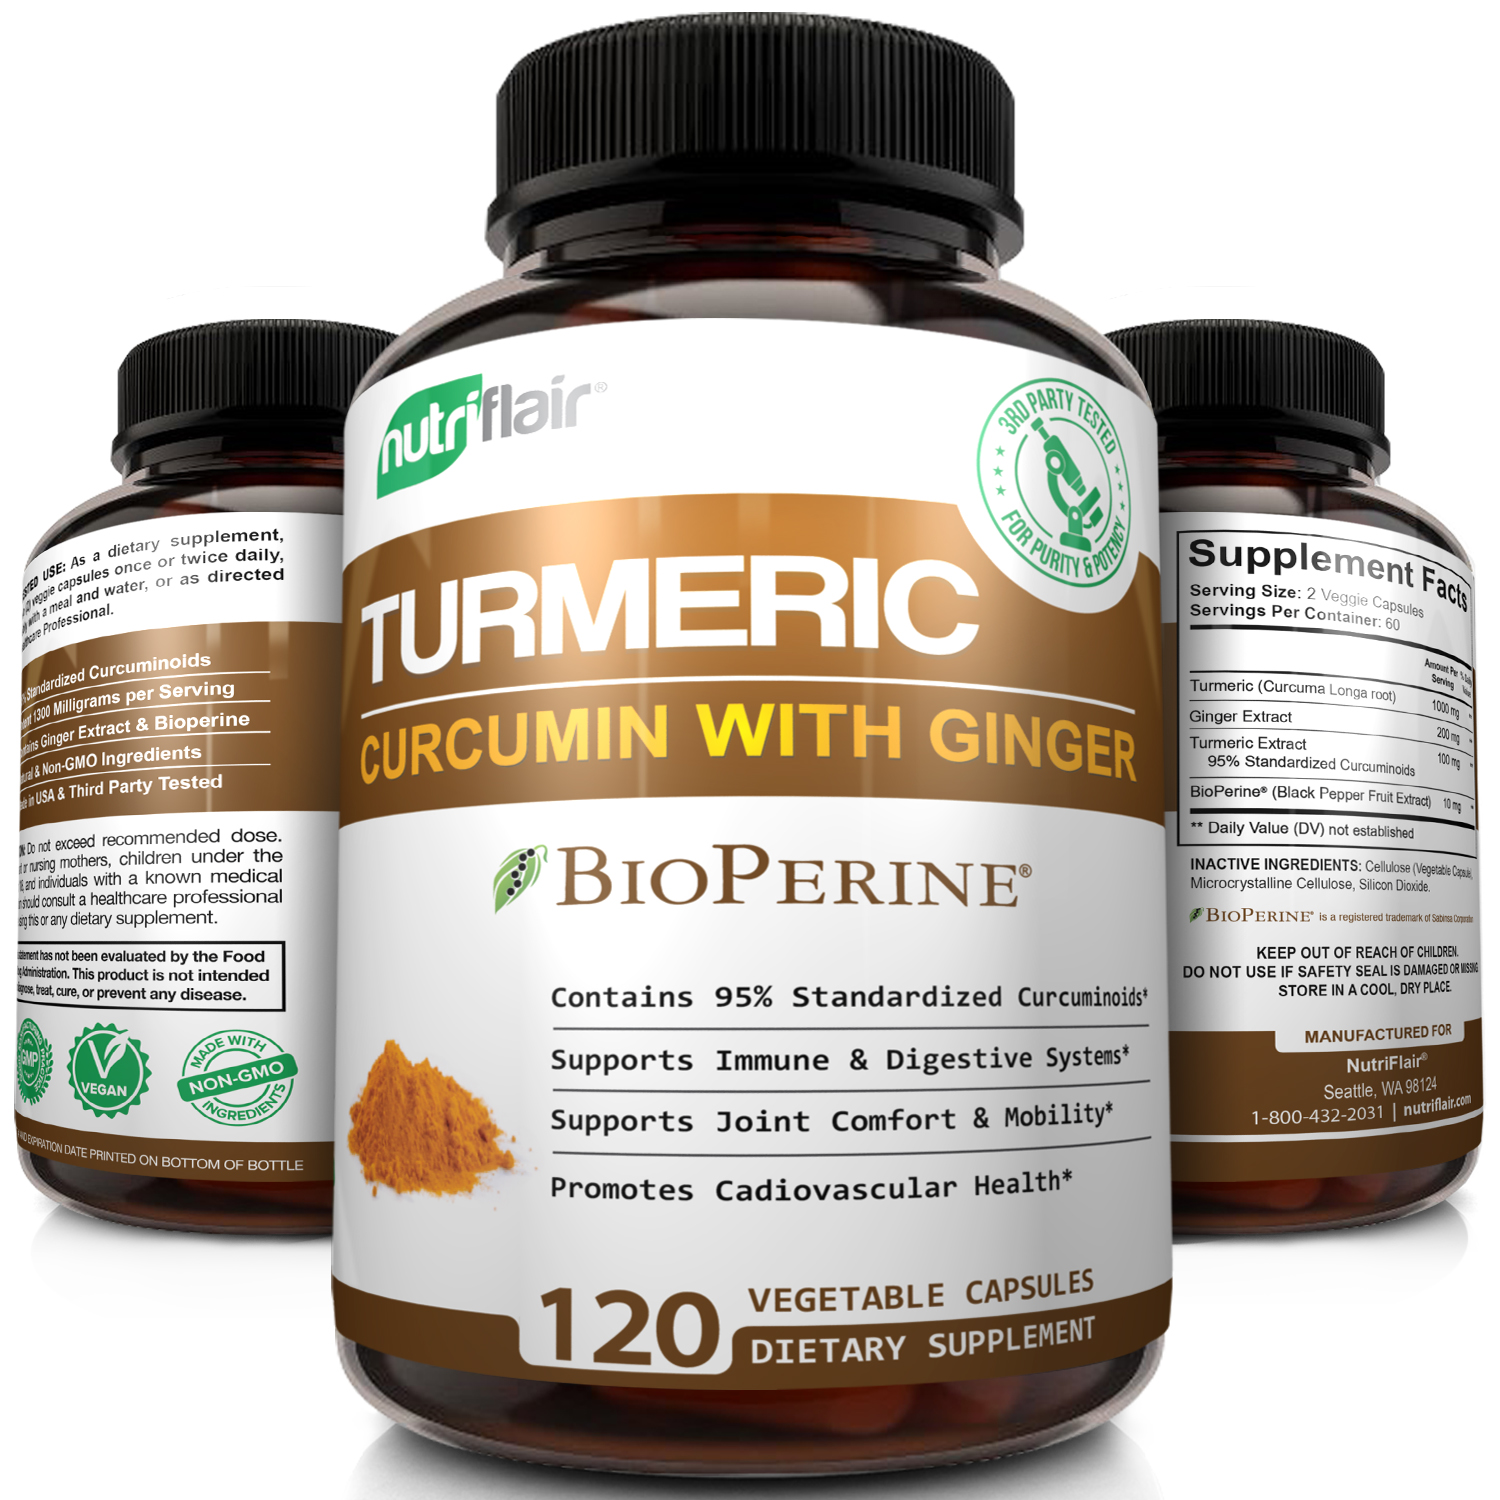 NutriFlair Turmeric Curcumin with Ginger and BioPerine Black Pepper, 1000mg Turmeric Capsules - Highest Potency Pain Relief, Joint Support, Non GMO, Gluten Free, 120 Capsules